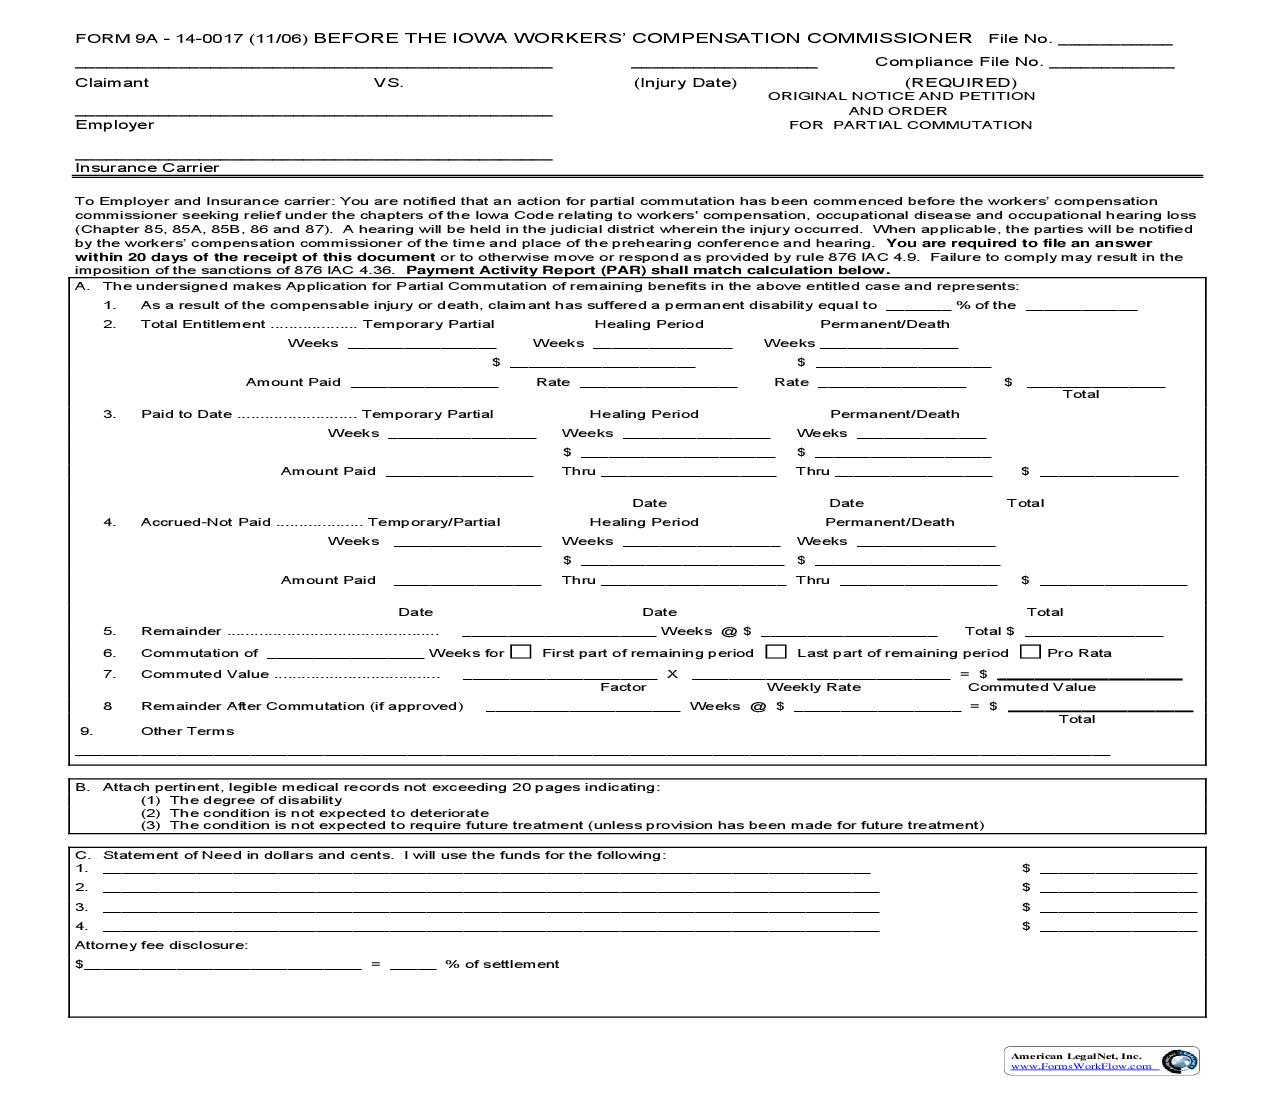 Original Notice And Petition And Order For Partial Commutation {9A} | Pdf Fpdf Doc Docx | Iowa